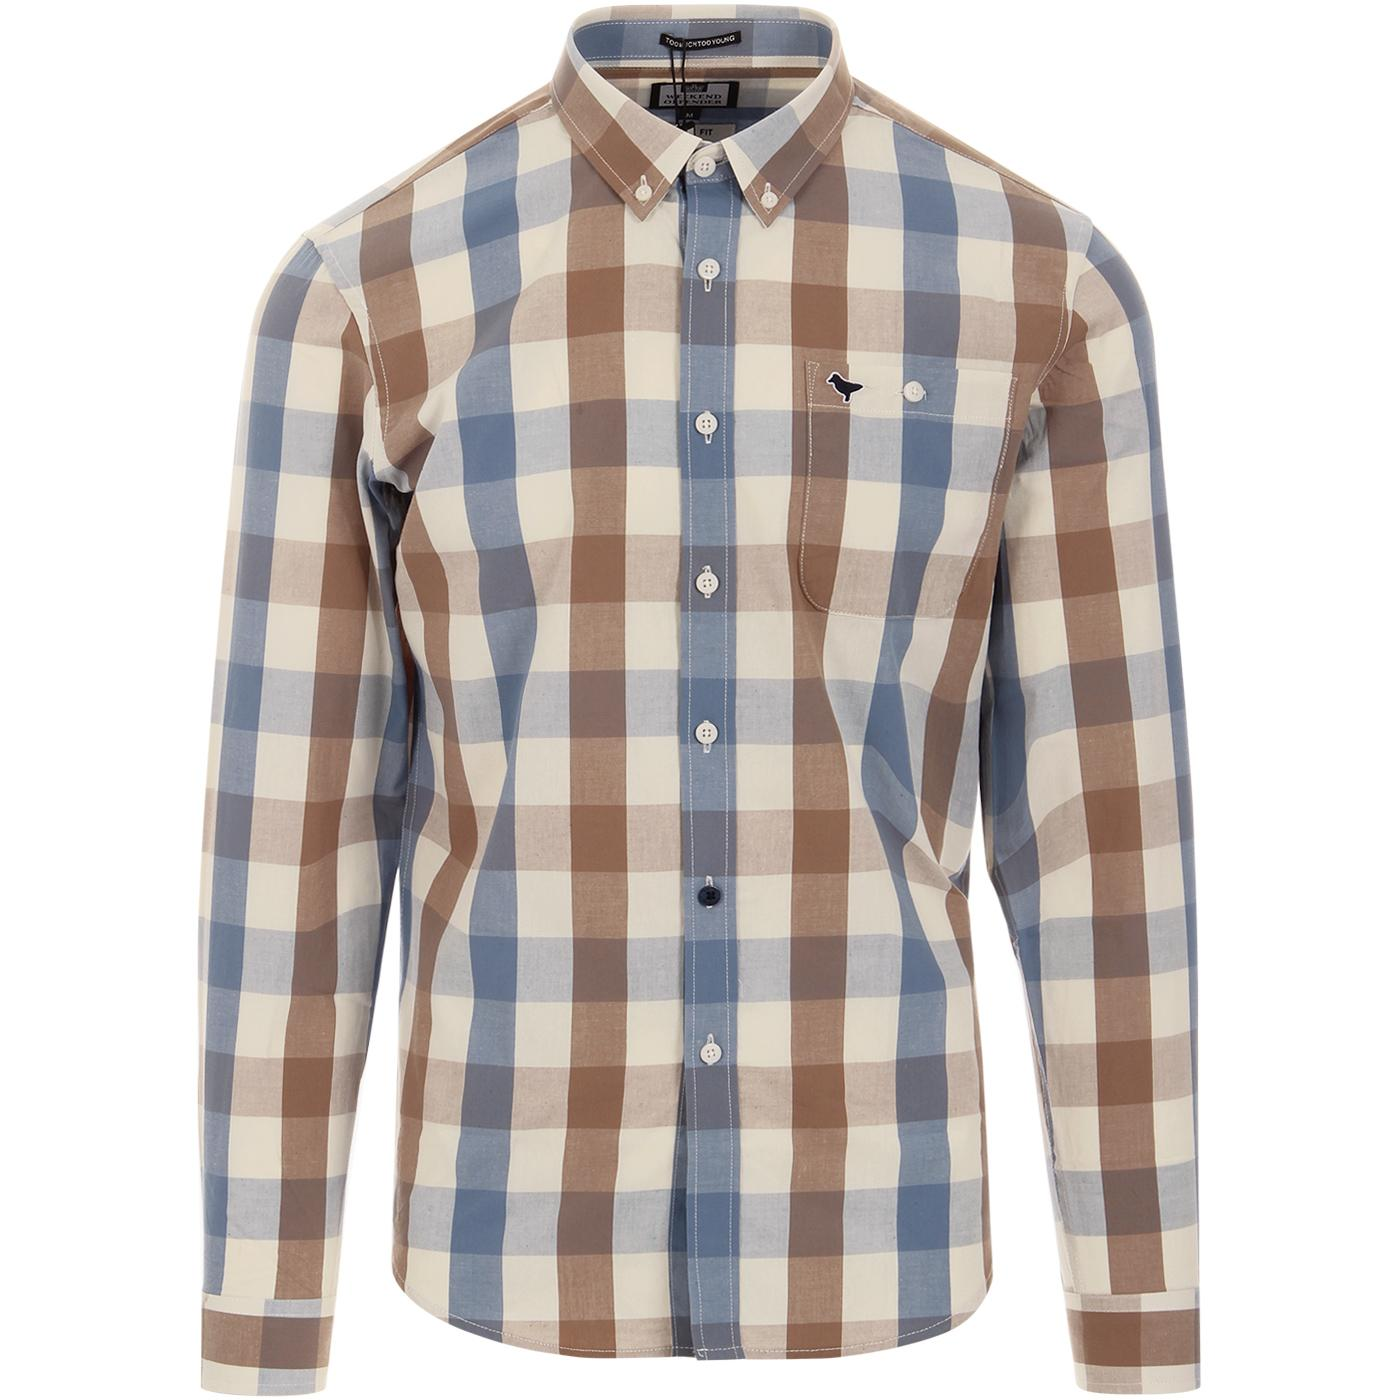 Geveria WEEKEND OFFENDER Retro Mod Check Shirt T